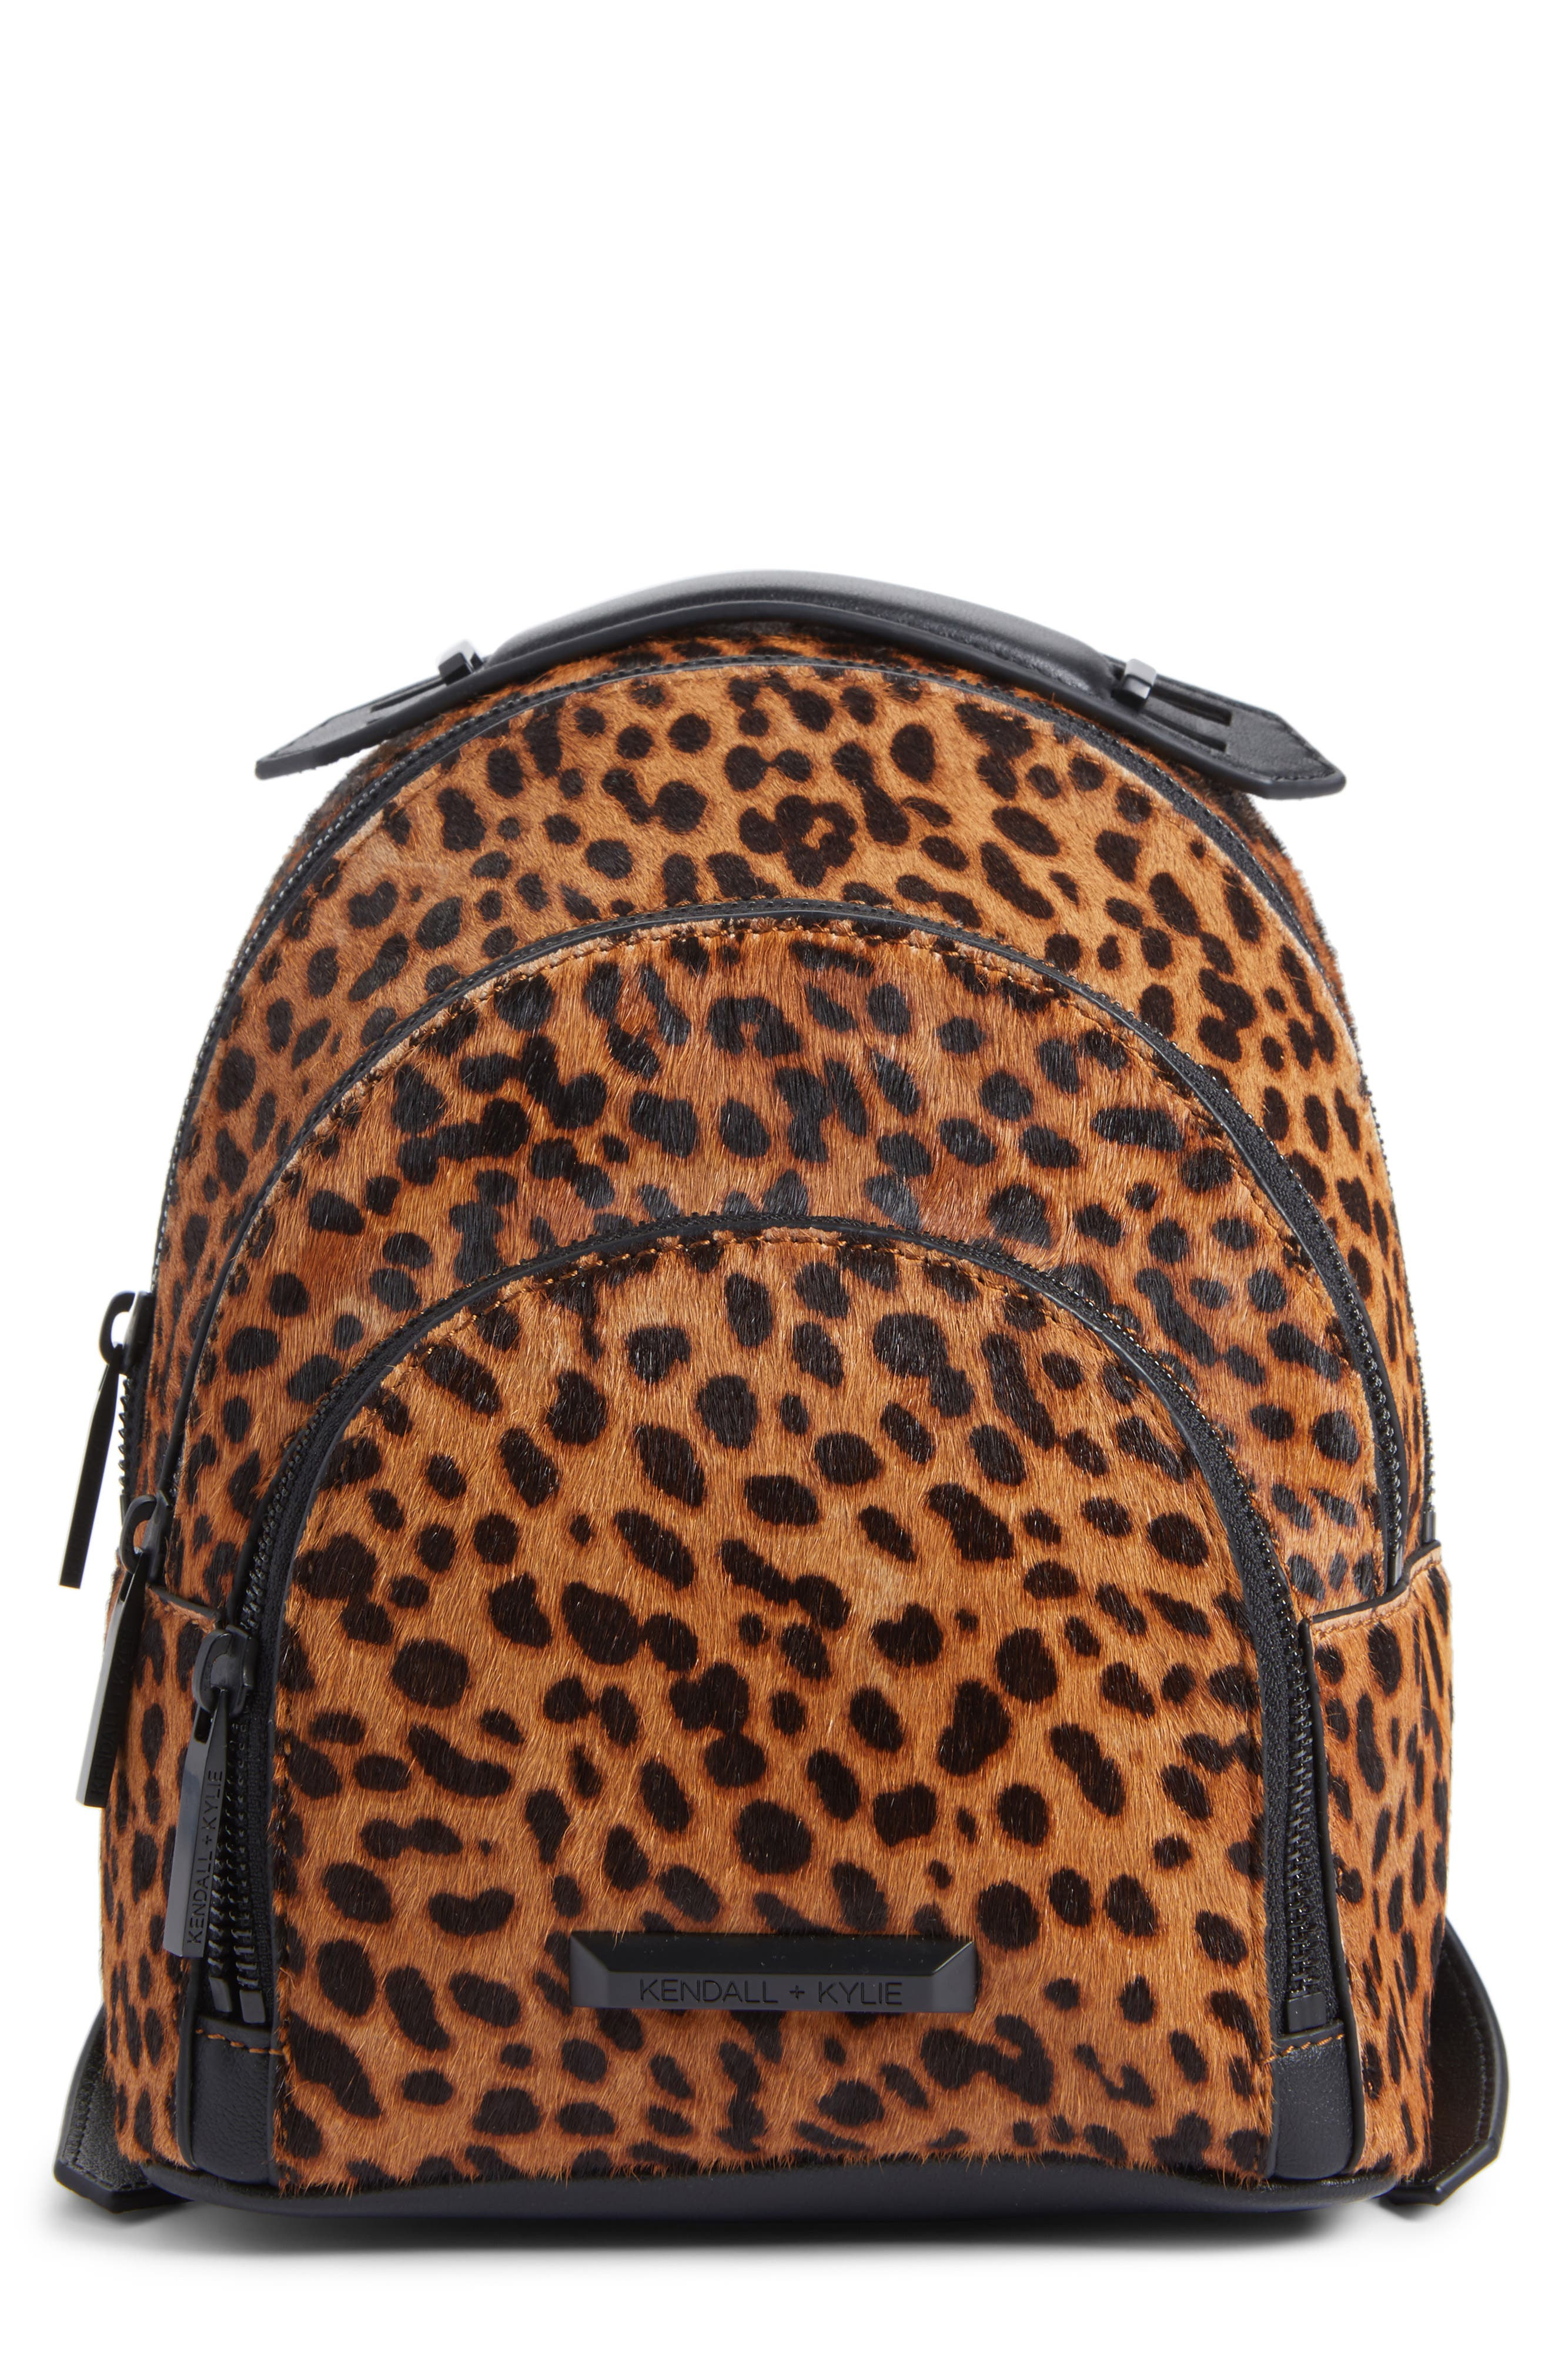 Main Image - KENDALL + KYLIE Mini Sloane Genuine Calf Hair & Leather Backpack